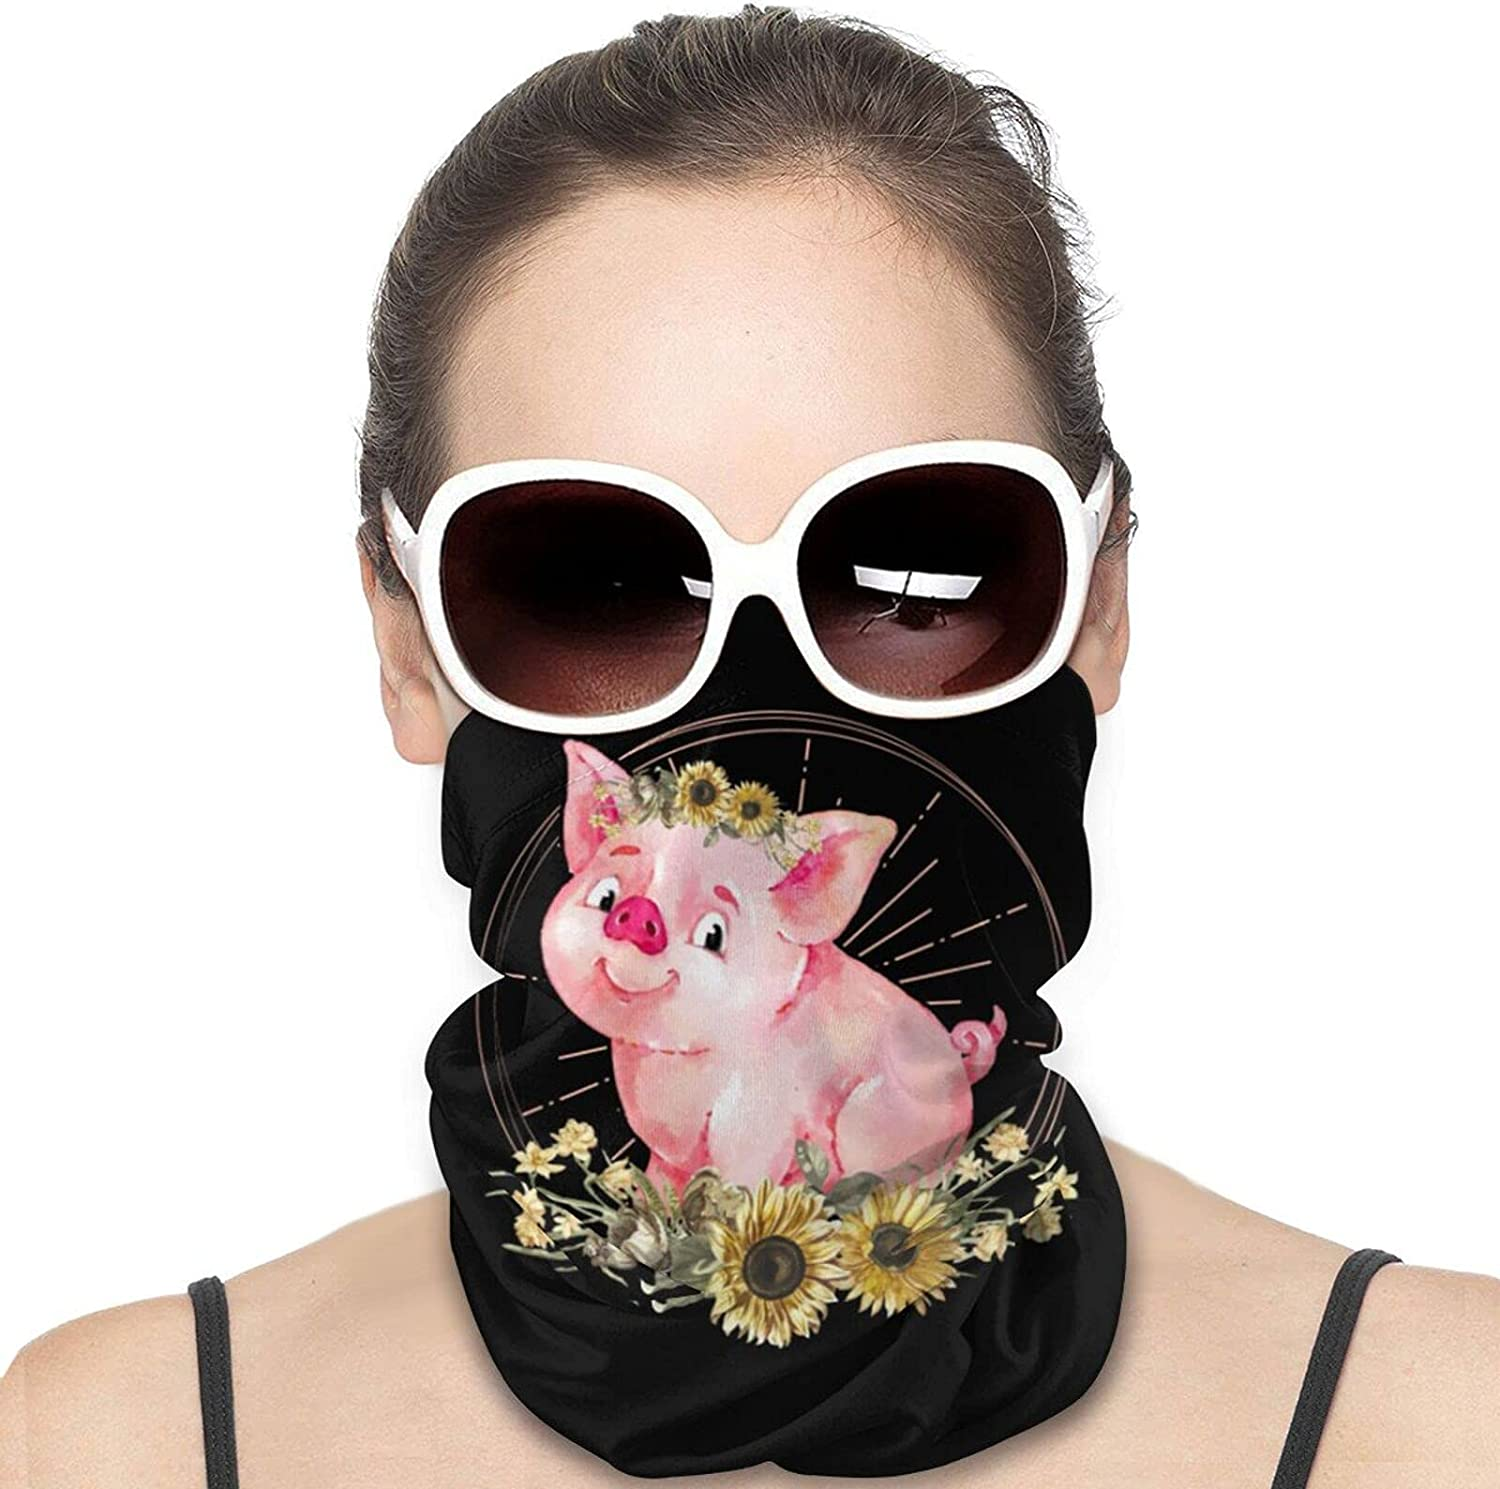 Cute Pig with Sunflowers Round Neck Gaiter Bandnas Face Cover Uv Protection Prevent bask in Ice Scarf Headbands Perfect for Motorcycle Cycling Running Festival Raves Outdoors